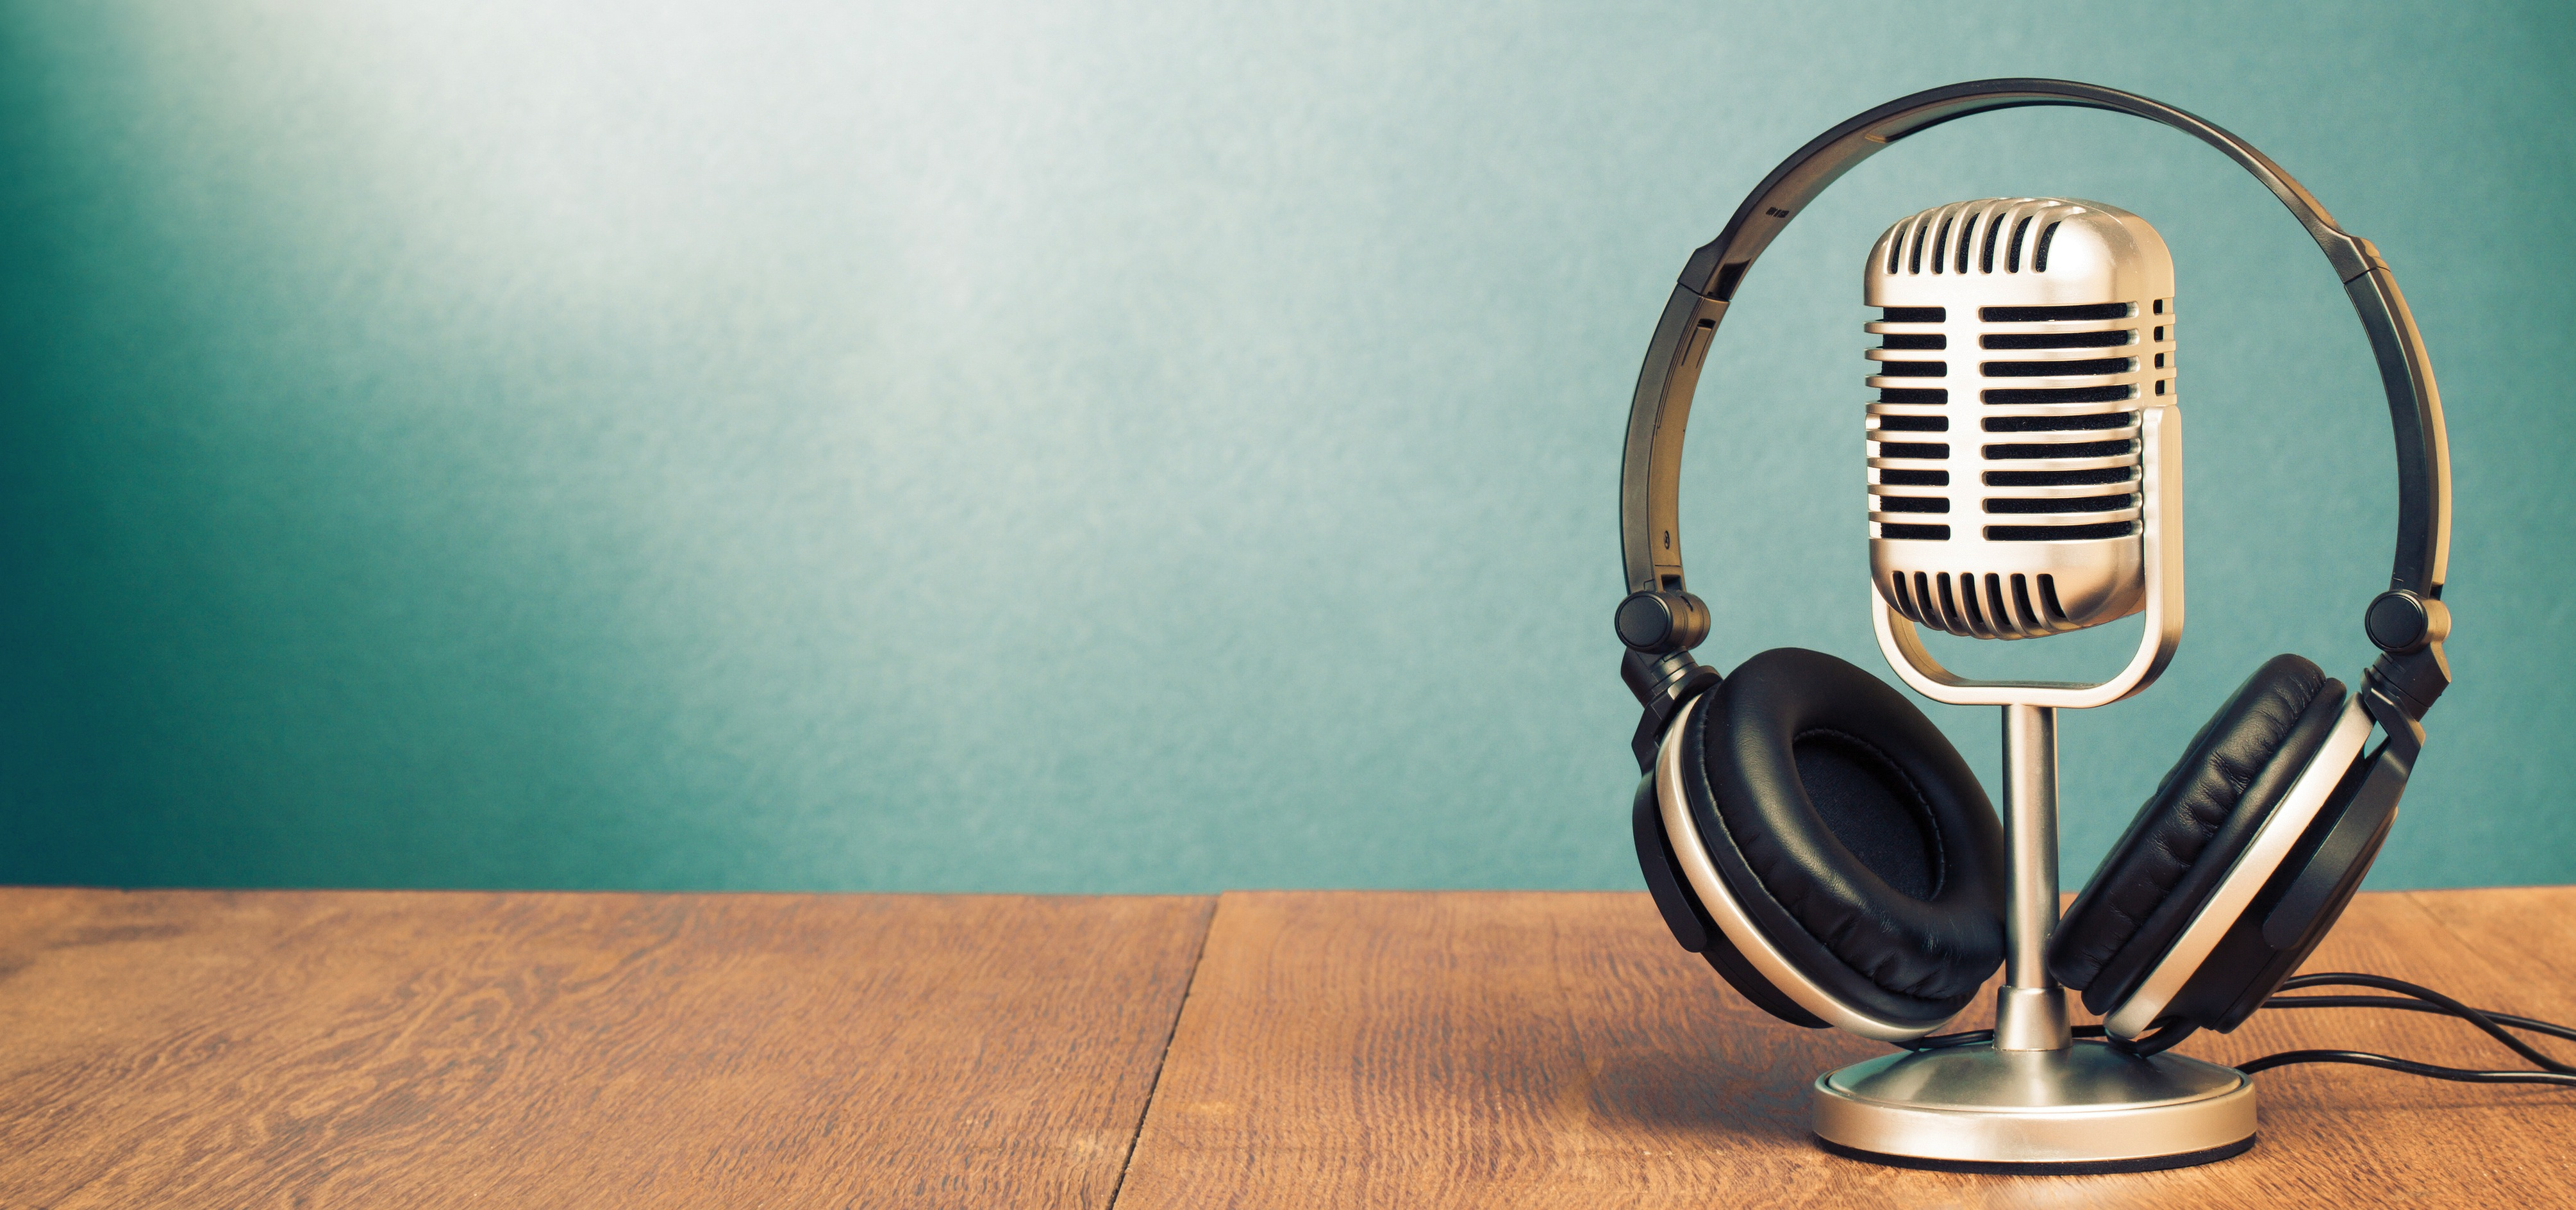 9 Best Podcast Apps for the iPhone and iPad